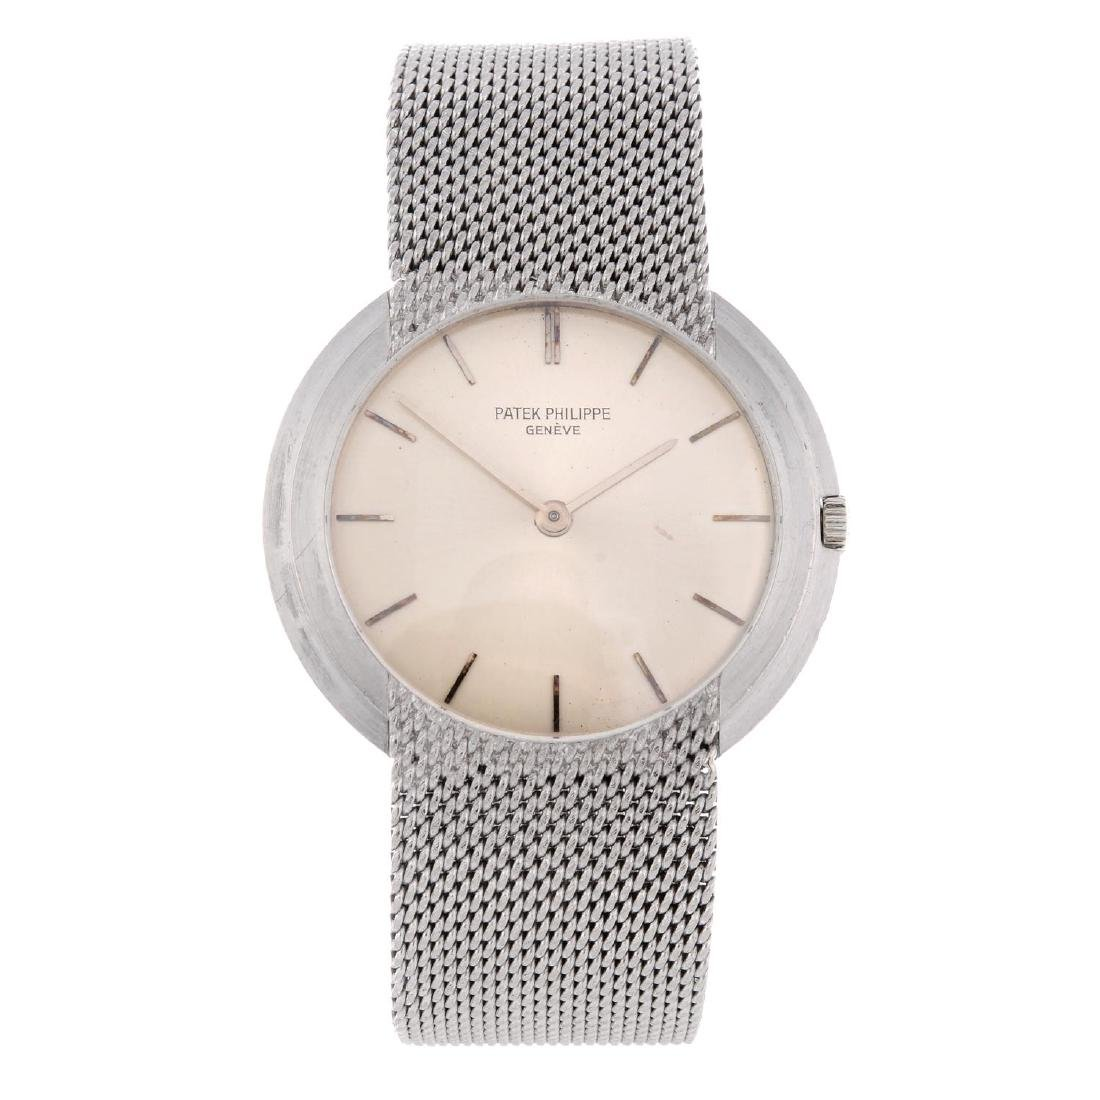 PATEK PHILIPPE - a gentleman's bracelet watch. White